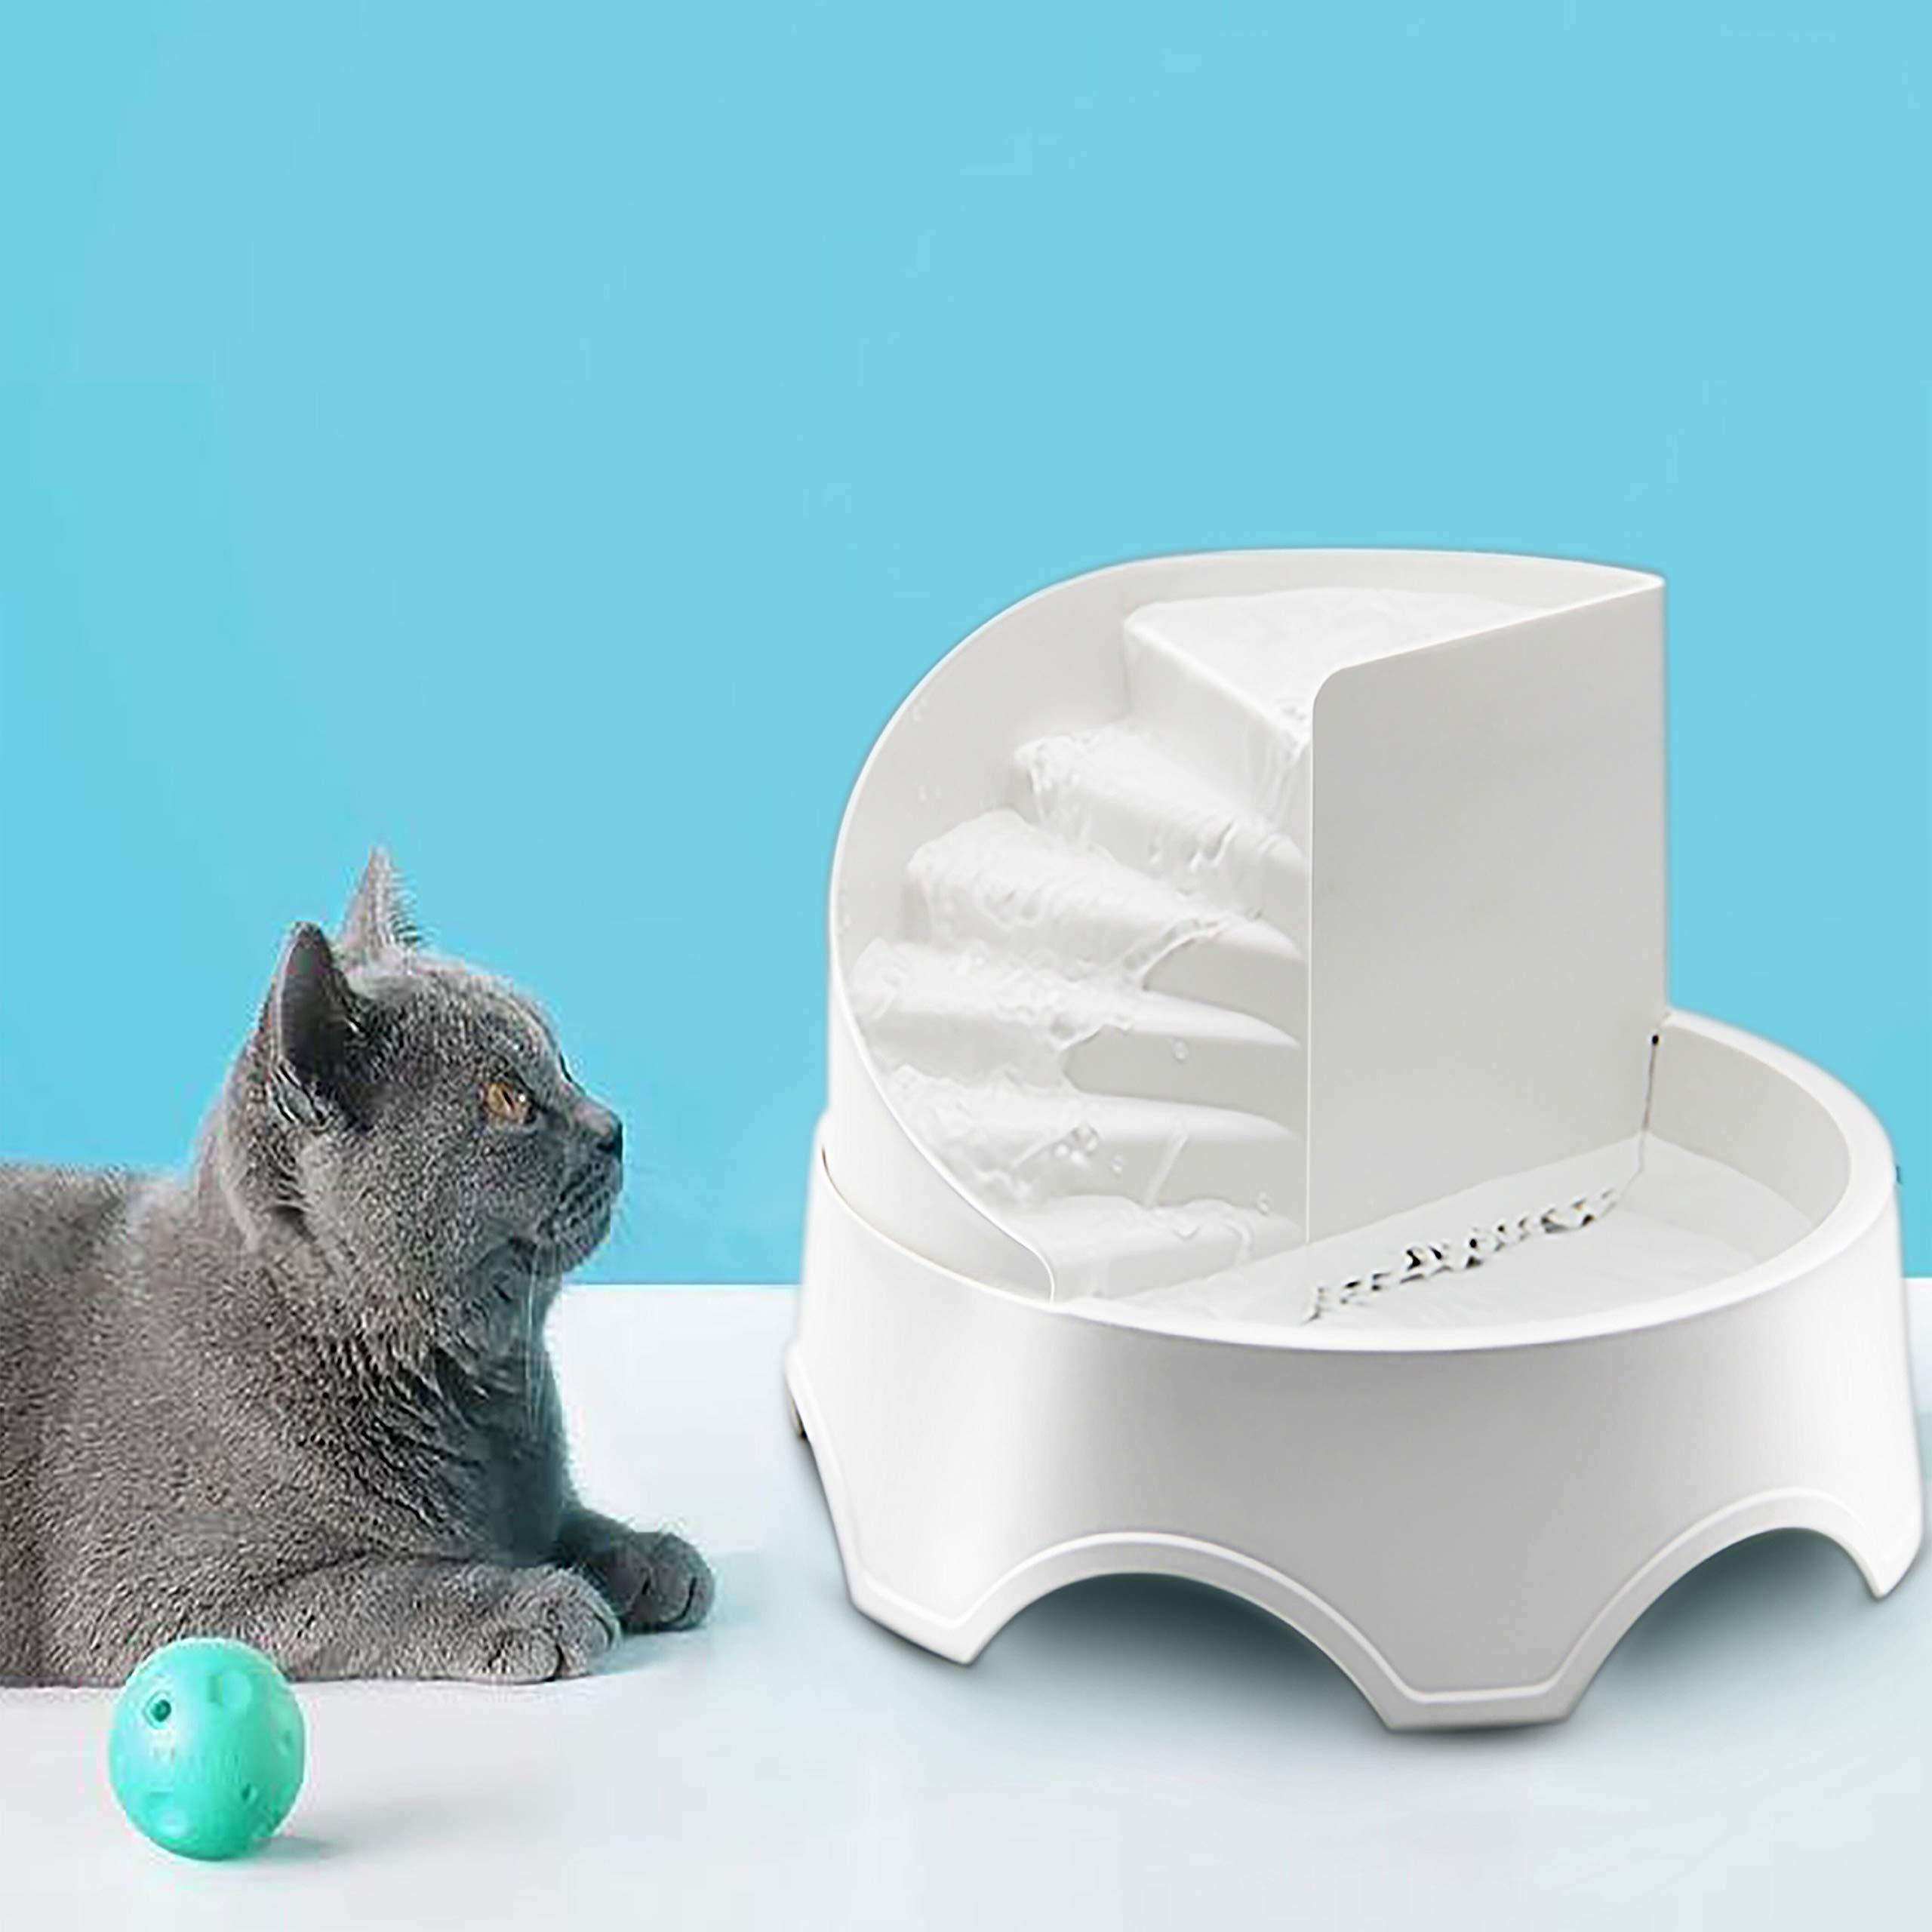 Luluhome Pet Fountain, 1.5L Automatic Cat Water Fountain Dog Water Dispenser, Filtered Water for Dog, Cat, Small Animals by Lulu Home